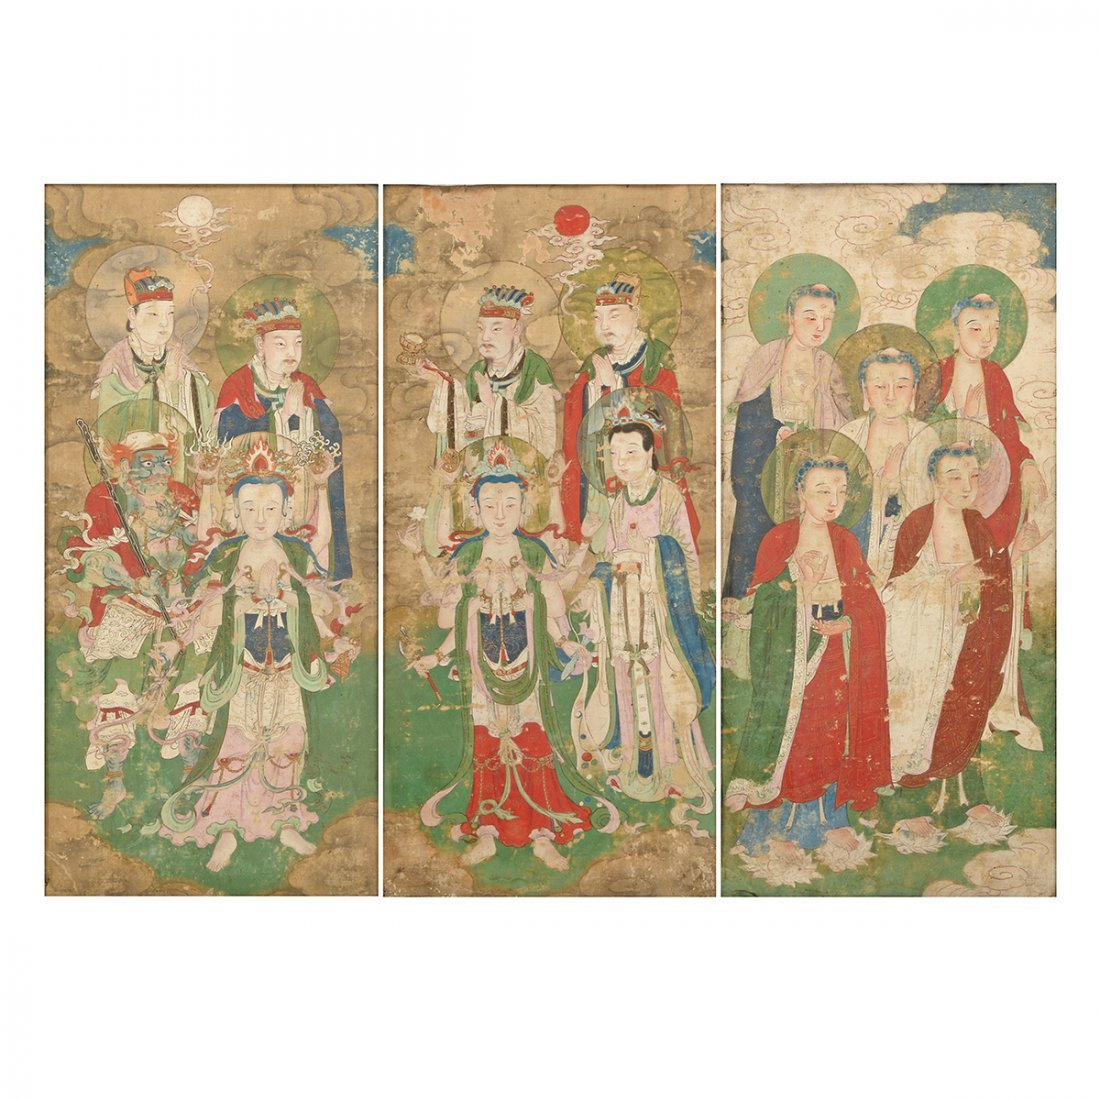 Anonymous: Three Buddhist Figural Painting Fragments